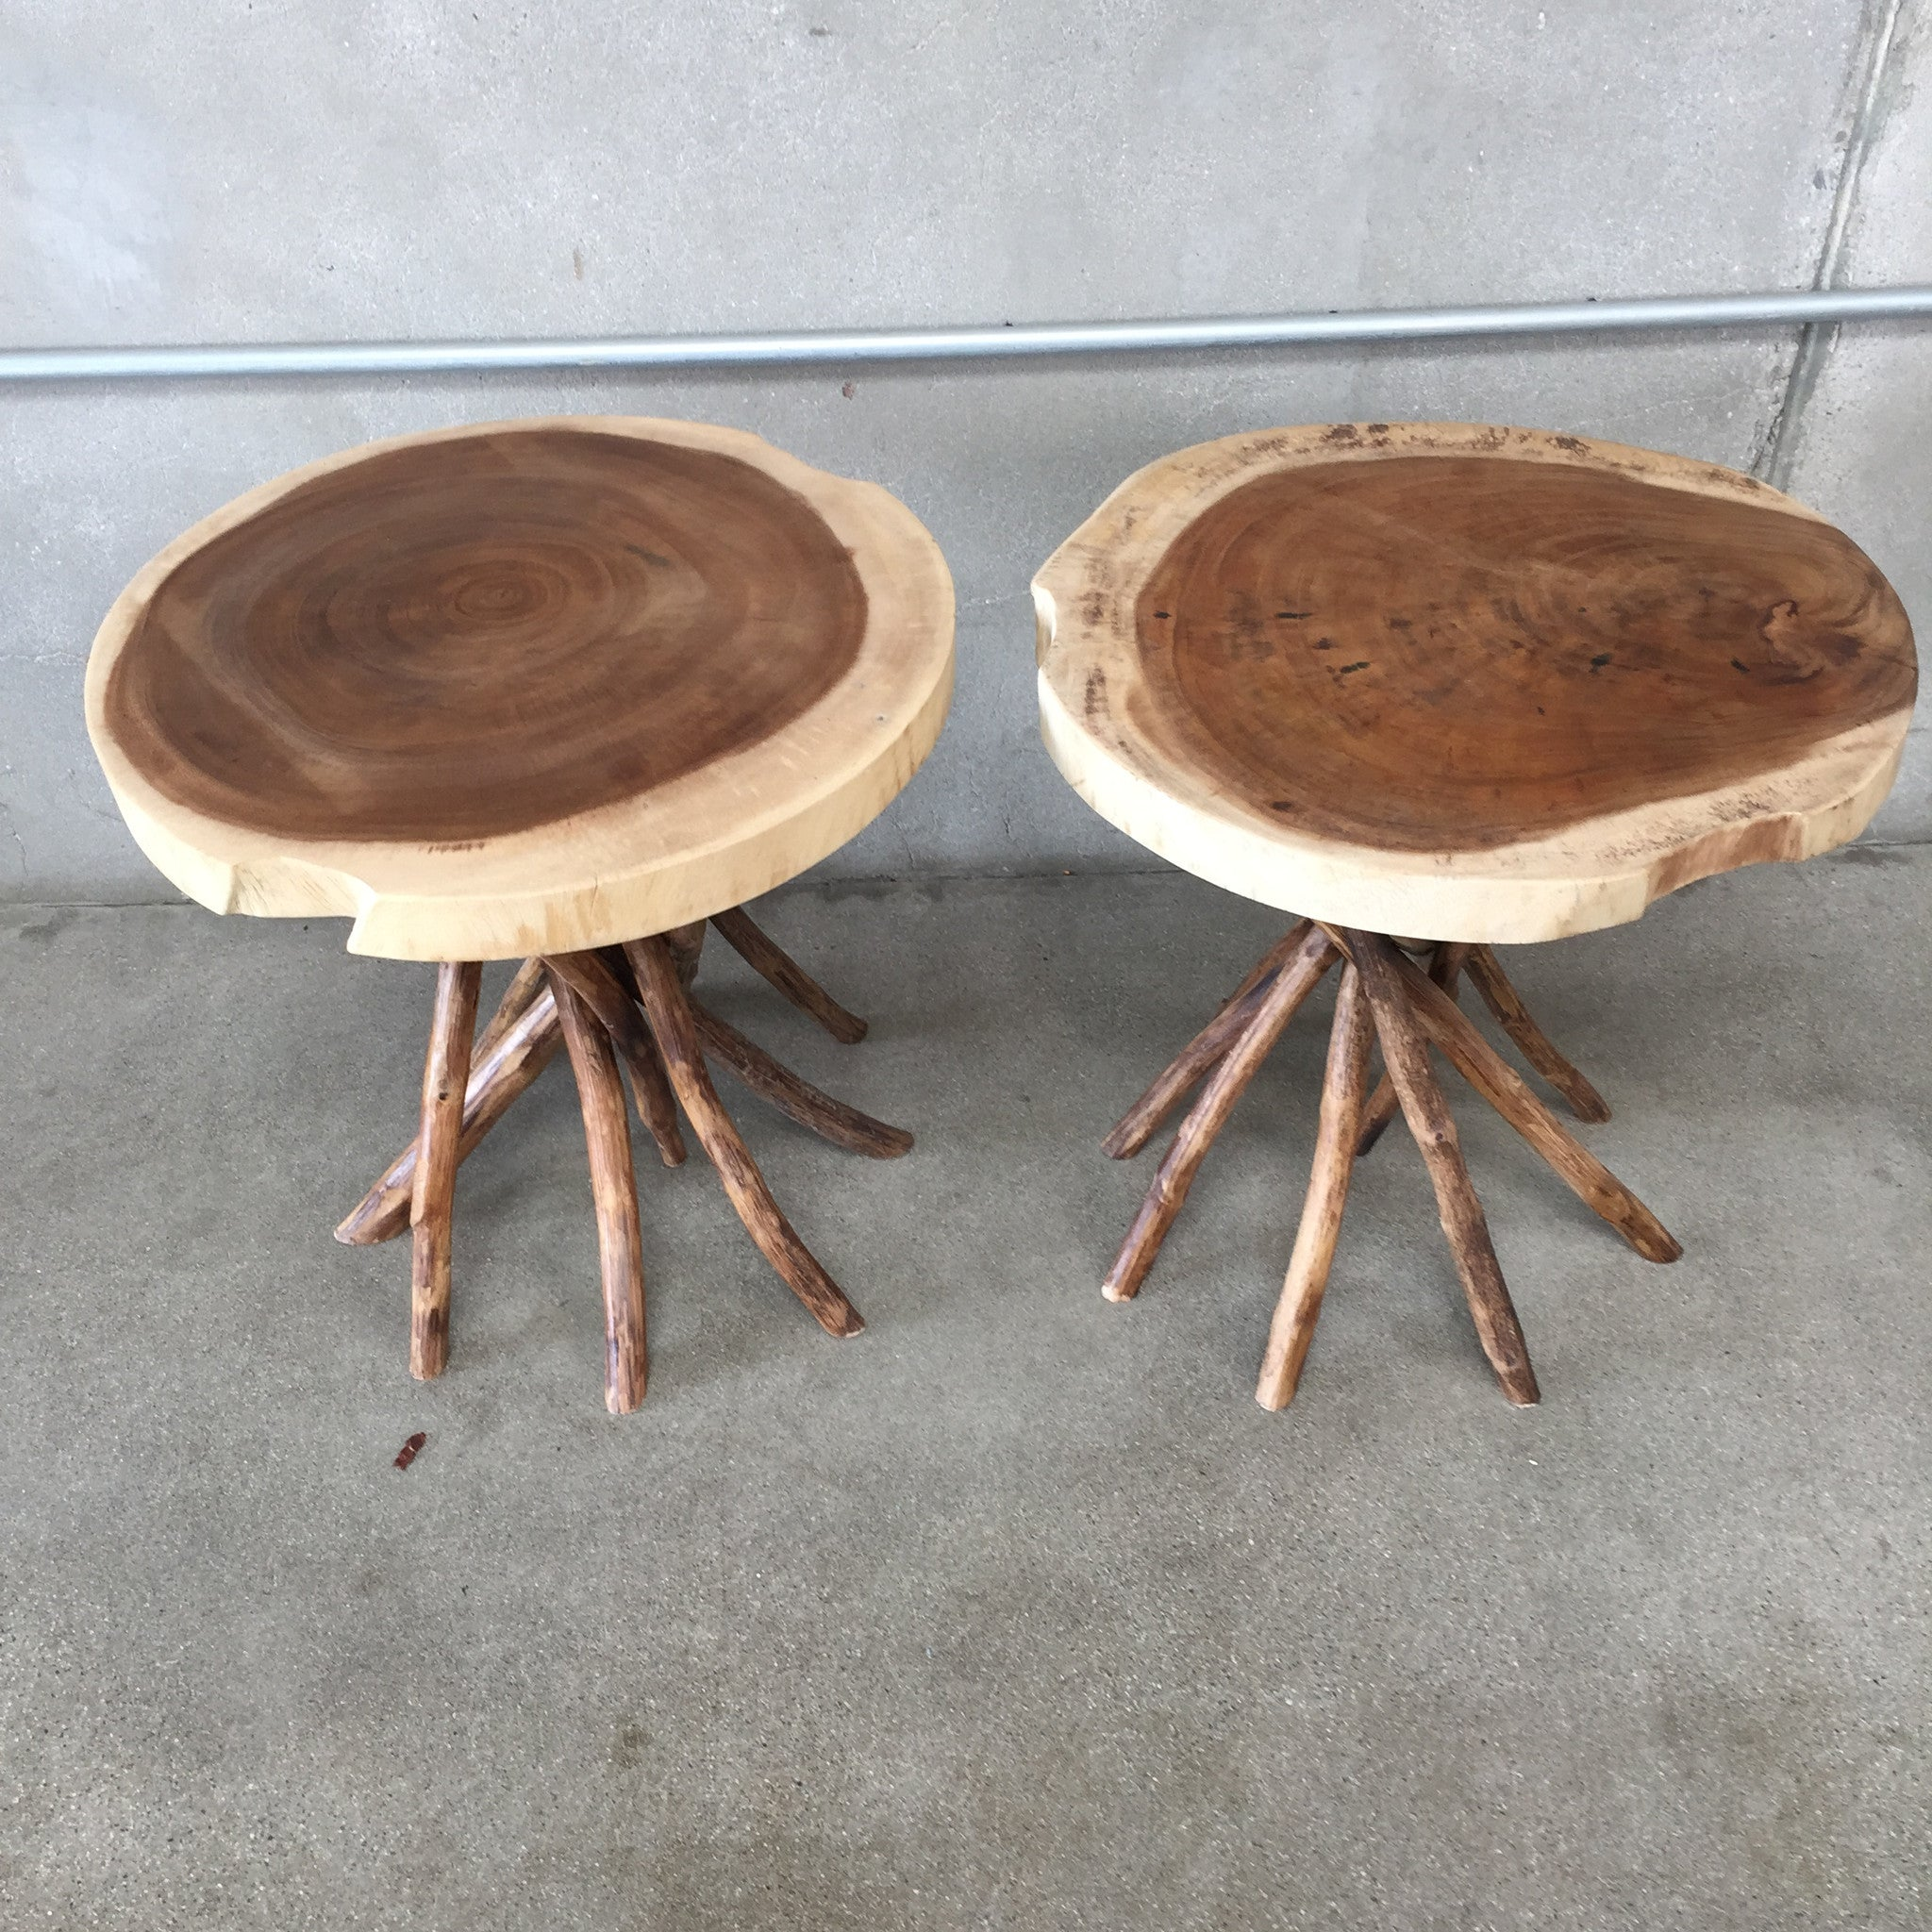 Handmade Indonesian End Tables Wood – UrbanAmericana